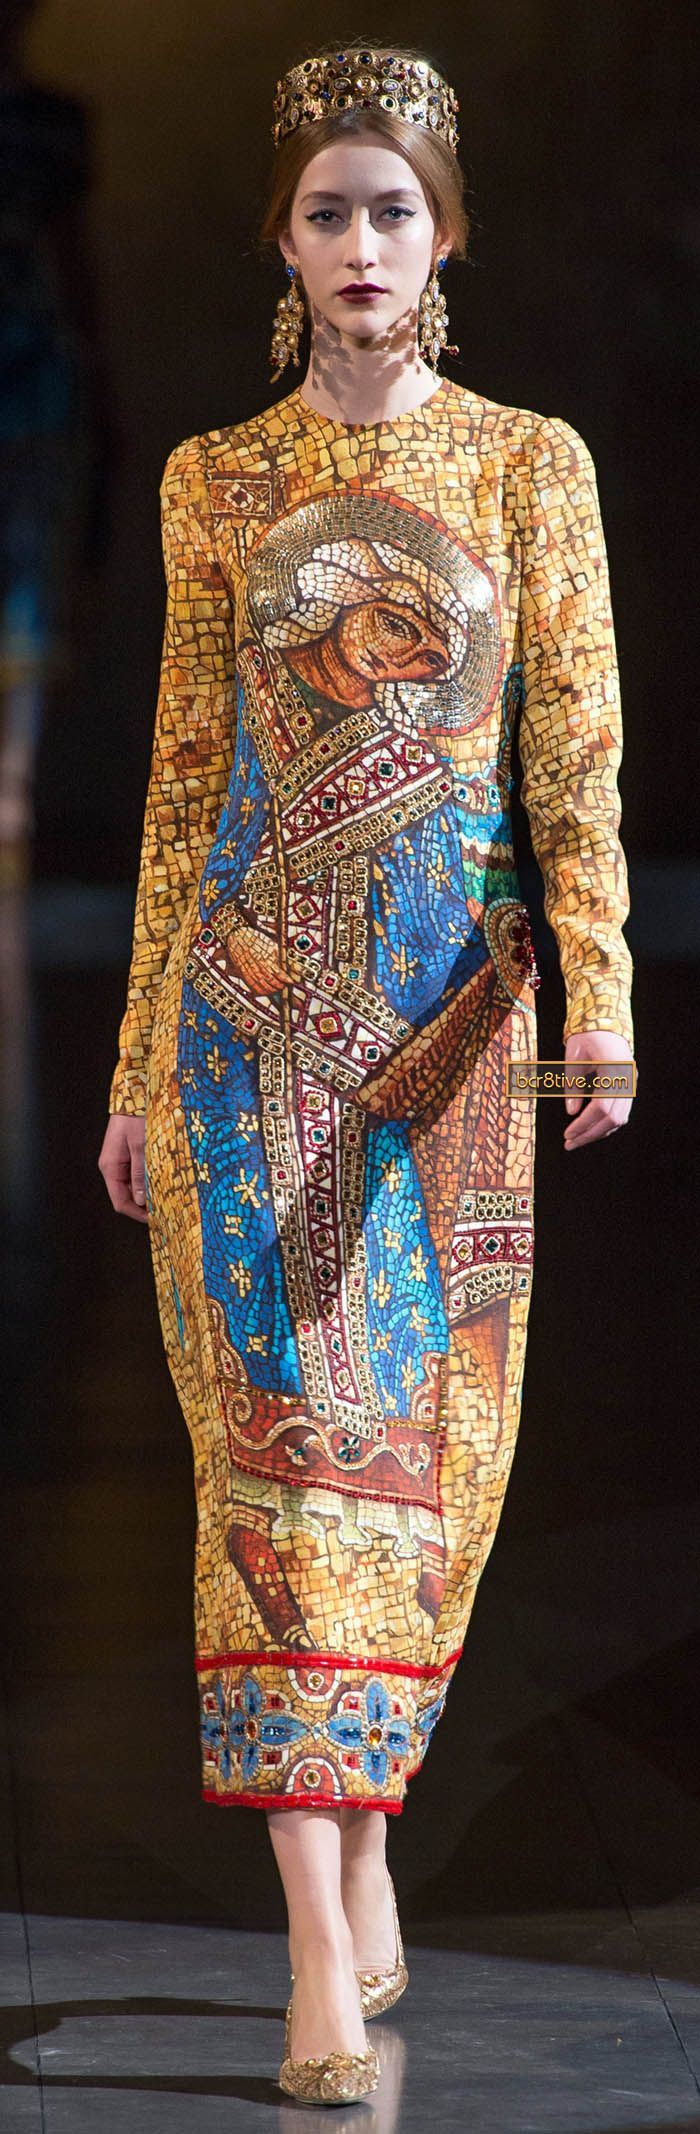 Dolce & Gabanna Fall Winter 2013-14 | The House of Beccaria #